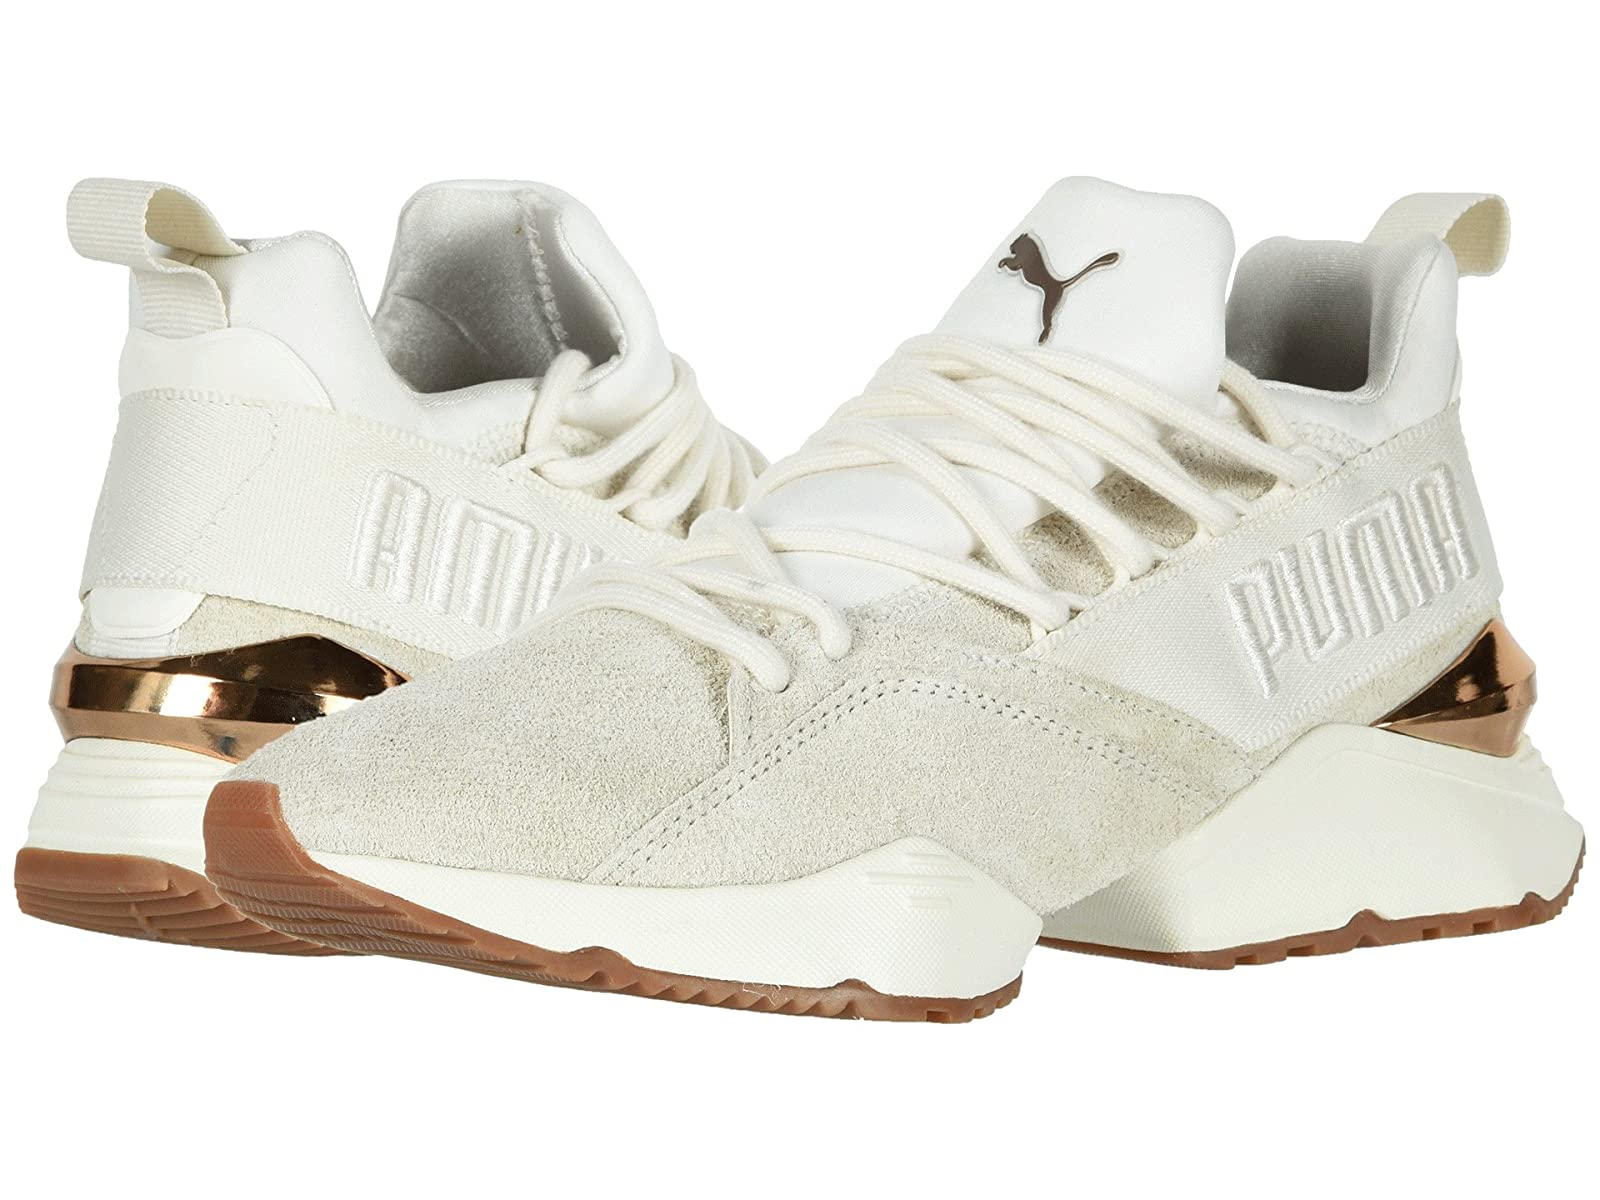 PUMA Muse Maia UtilAtmospheric grades have affordable shoes